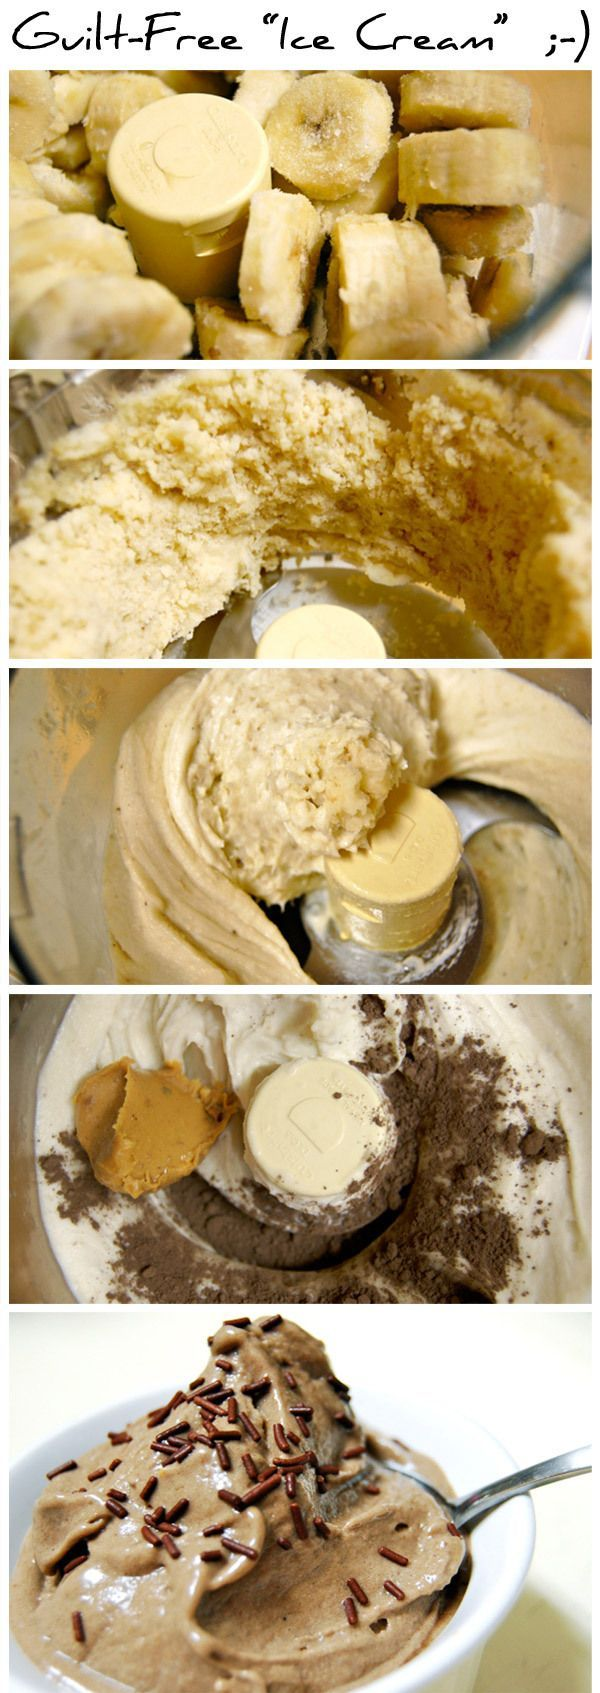 """Healthy ice cream: Guilt-Free """"Ice Cream""""!  No sugar. No dairy. This recipe really only requires: 3-4 bananas, sliced and frozen (slice before freezing) A spoonful of peanut butter 2-3 tsp. cocoa powder"""